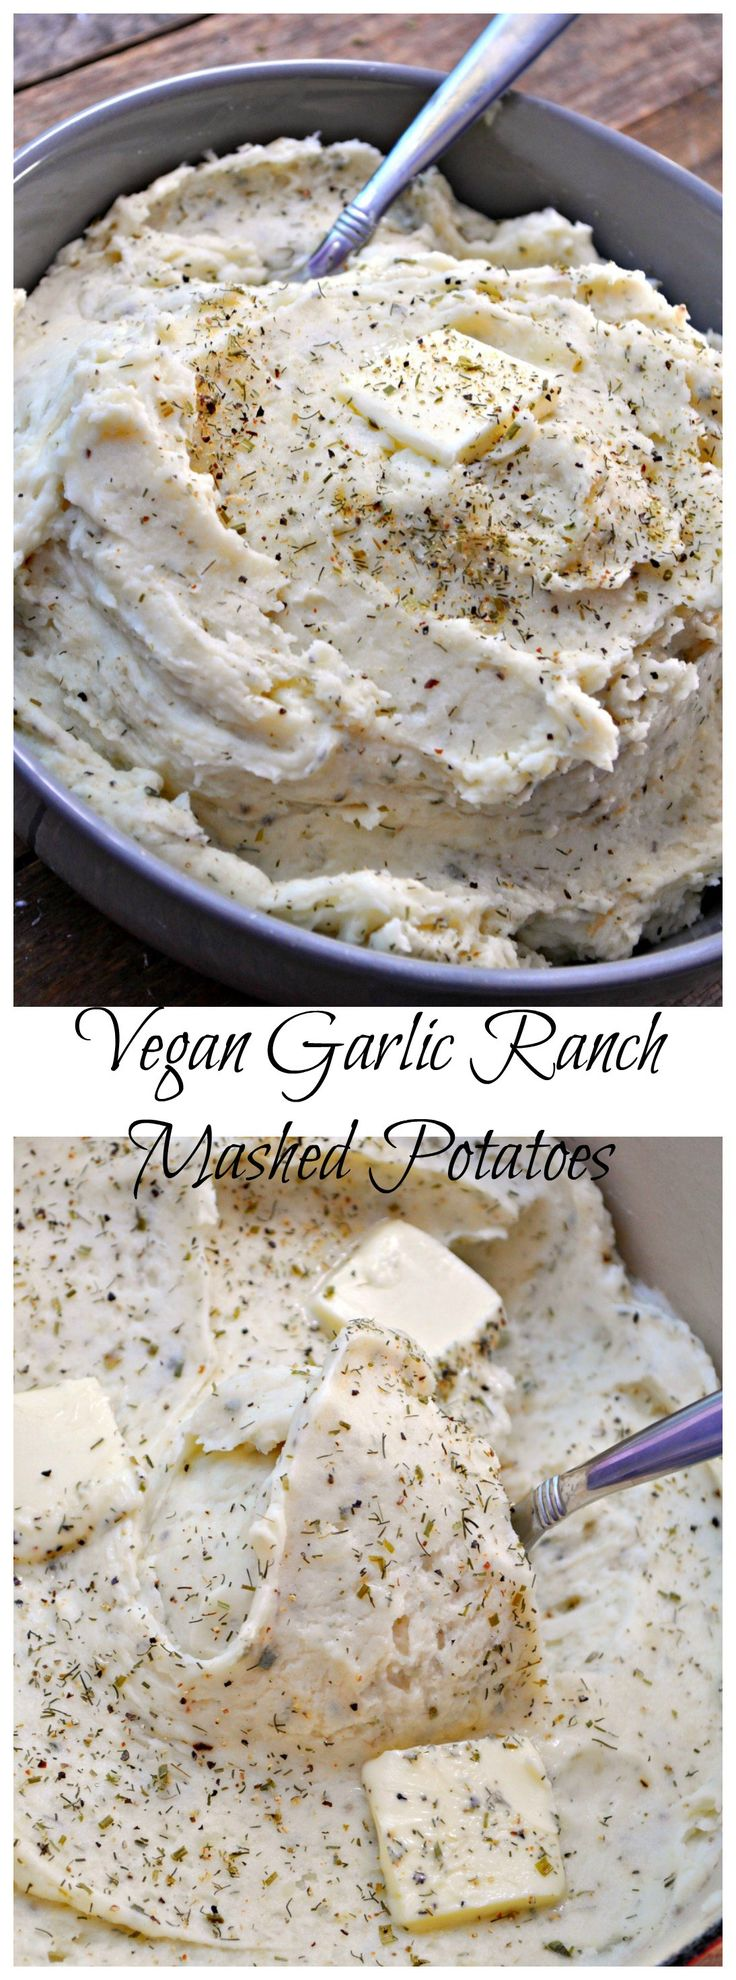 Super creamy dreamy vegan garlic ranch mashed potatoes are the perfect side dish for the holidays(or any time)! Super easy and totally perfect!